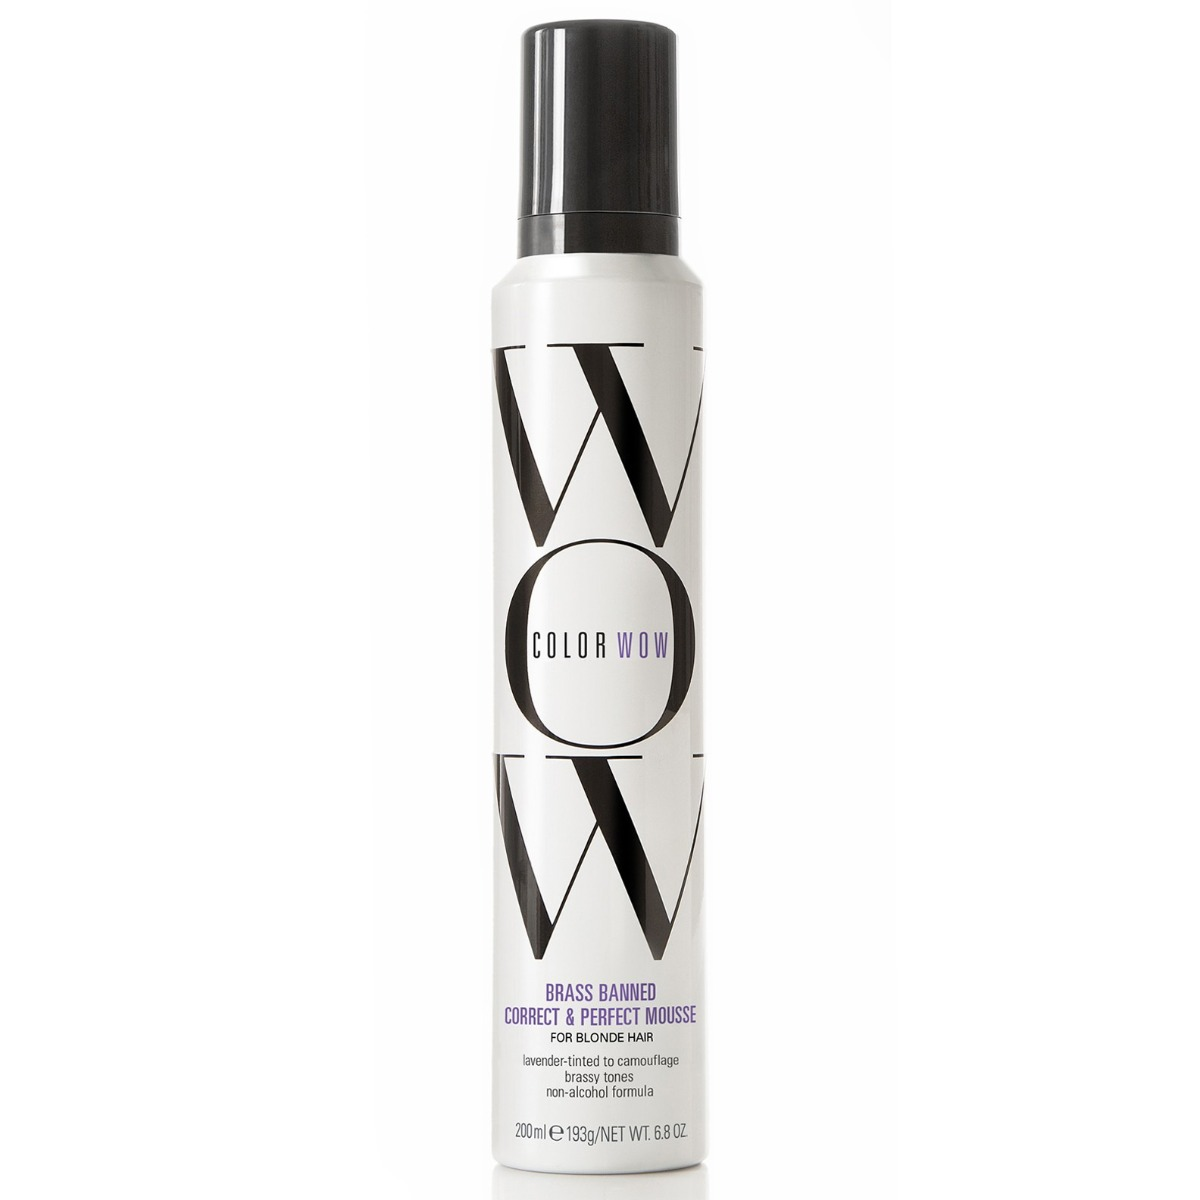 Color Wow Brass Banned Mousse for Blonde Hair 200ml